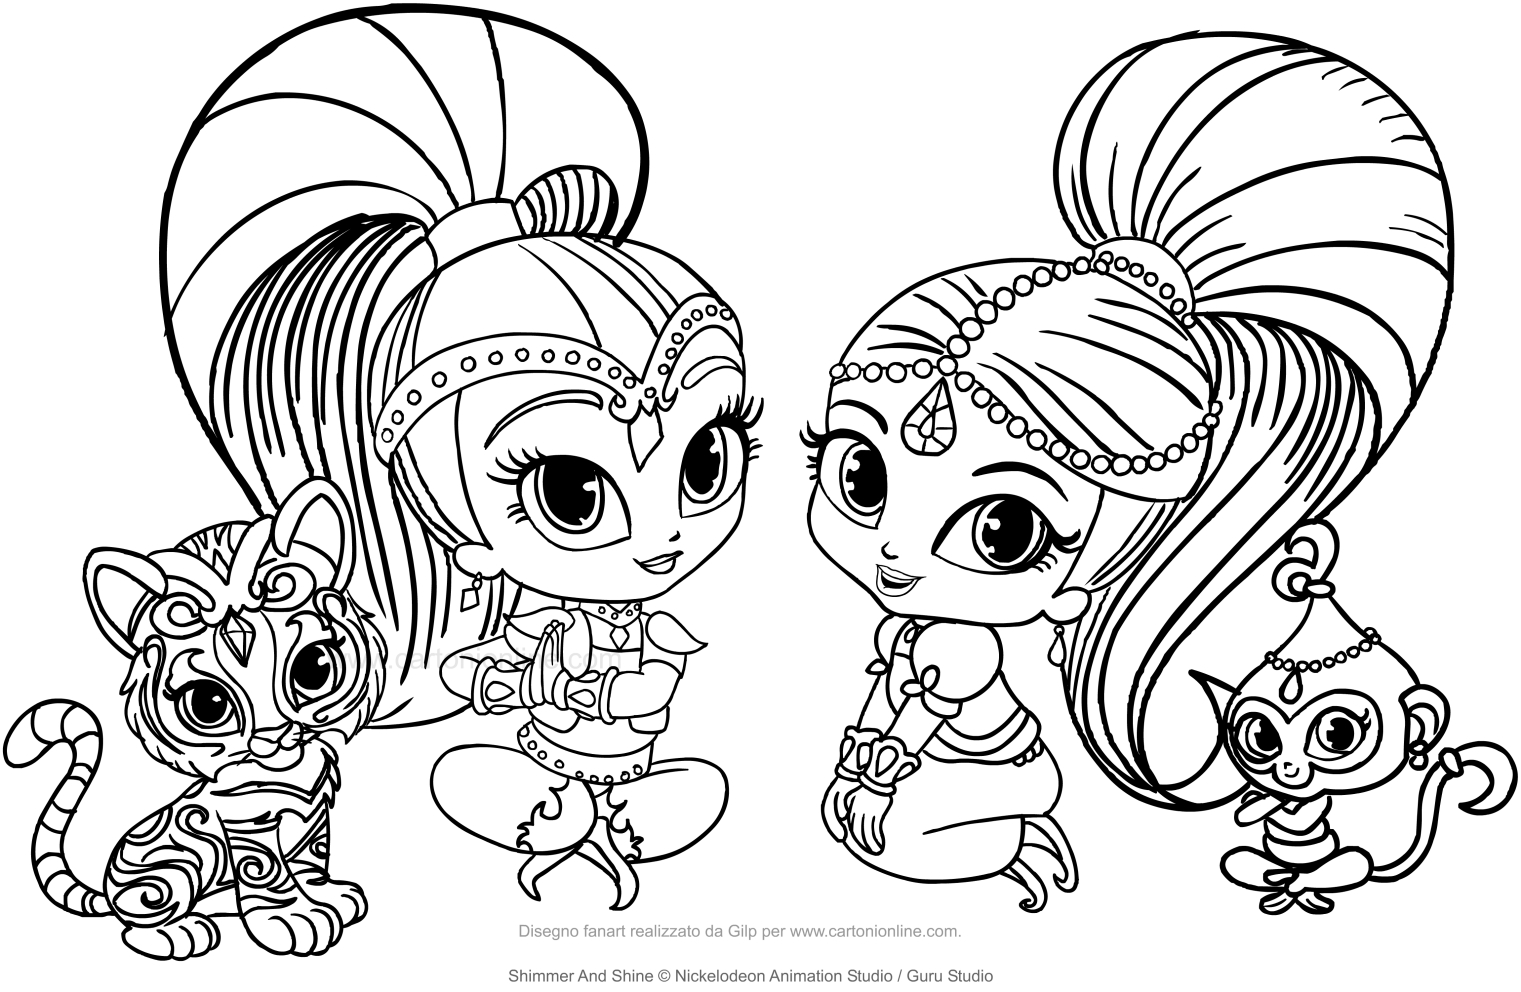 Chimchar together with Dibujo De Aprende Letras En Ingla S Serpiente Snake Para together with Motorcycle Coloring Pages in addition Emma pp lego friends besides John Deere Coloring Pages. on car color